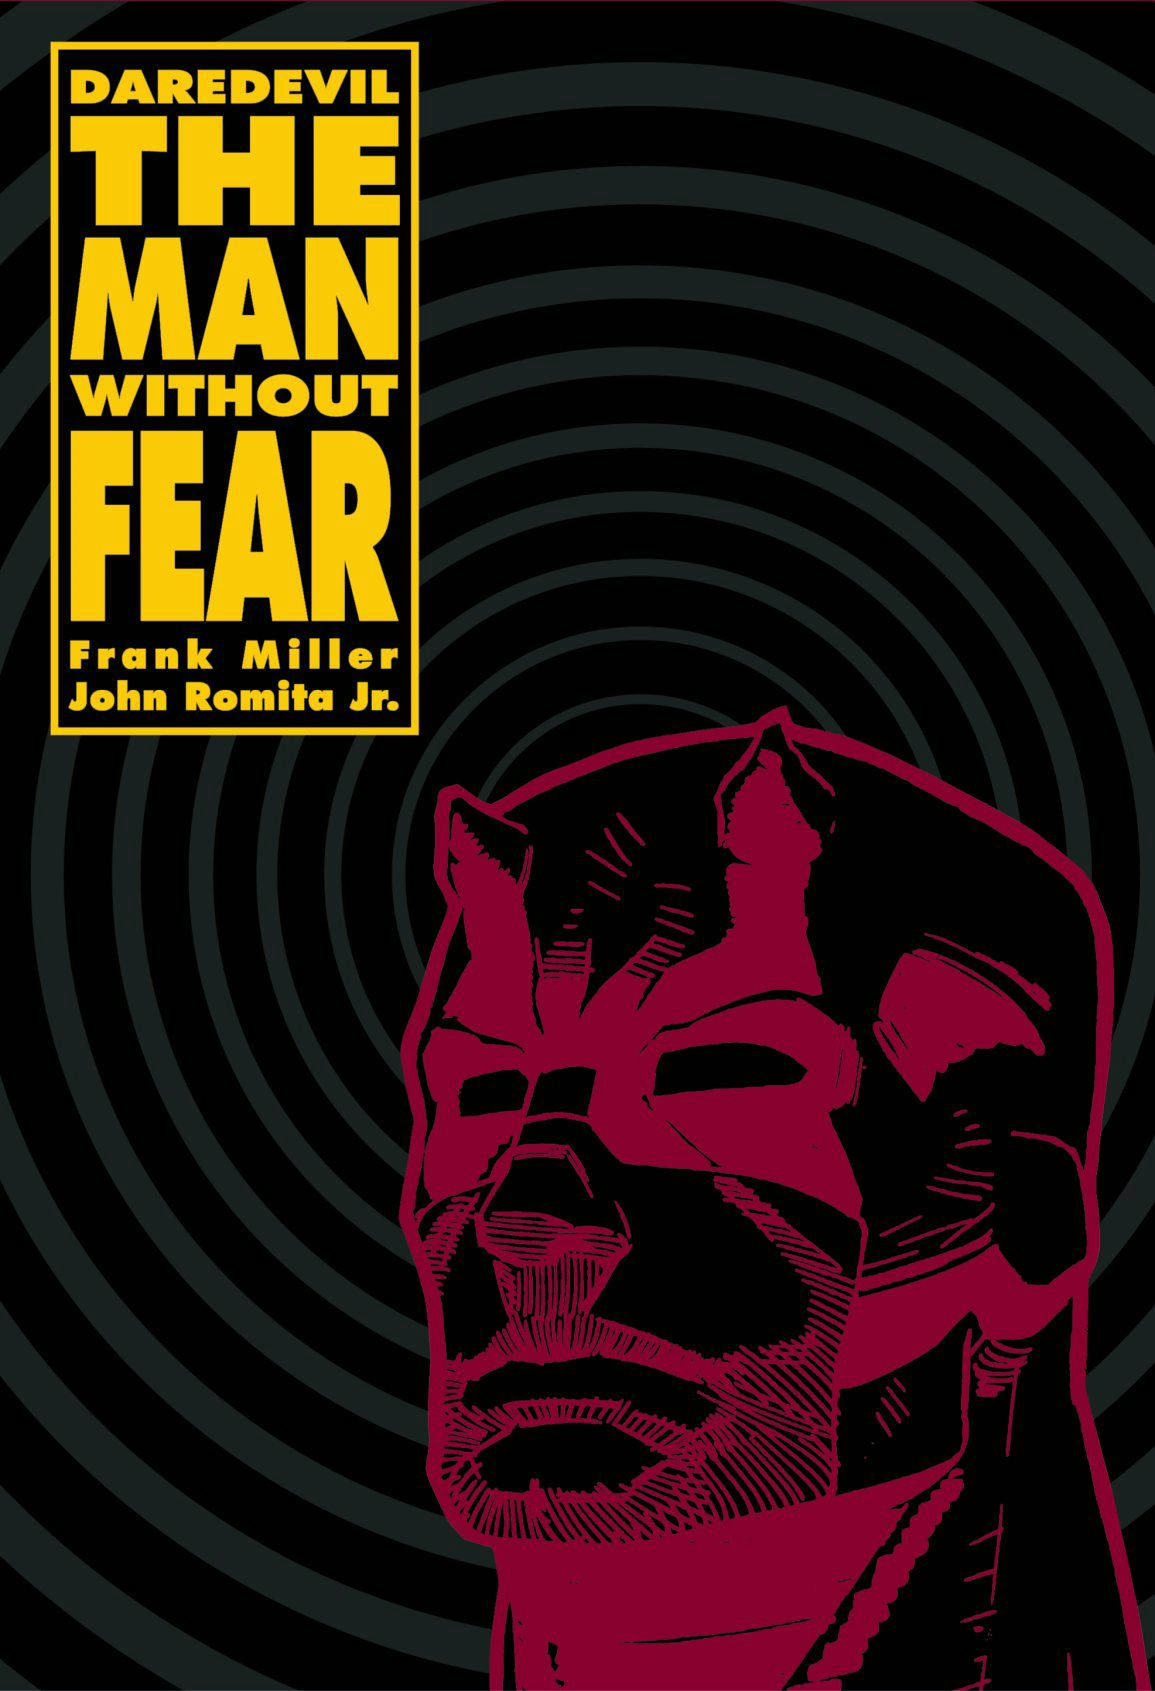 The Man without fear